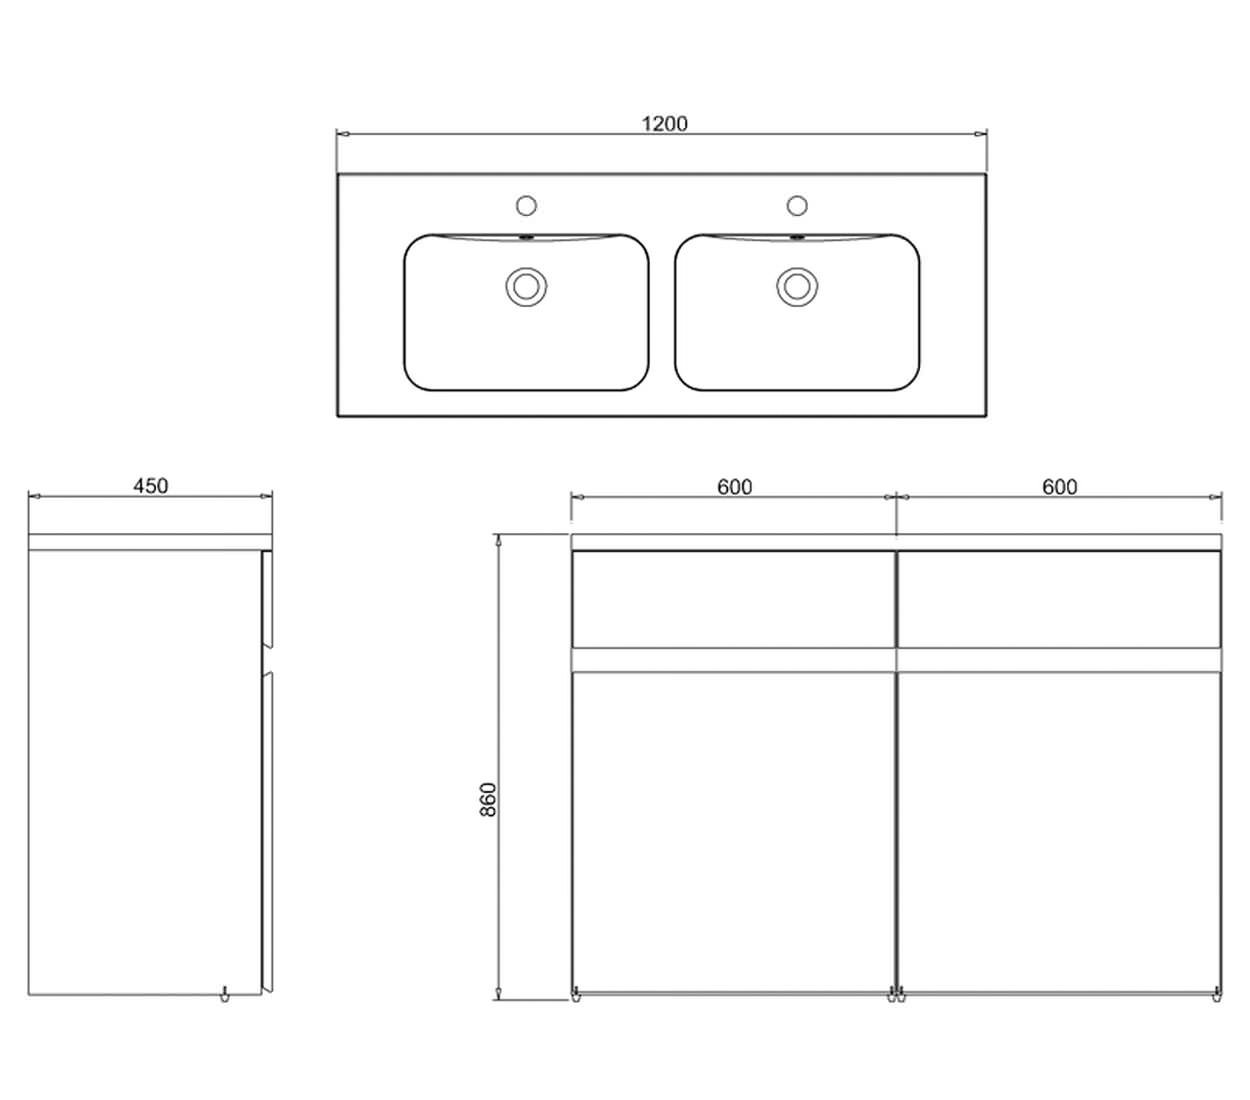 aqua cabinets d450 white double drawer units 2 bowl basin britton aqua cabinets d450 white double drawer units double bowl basin